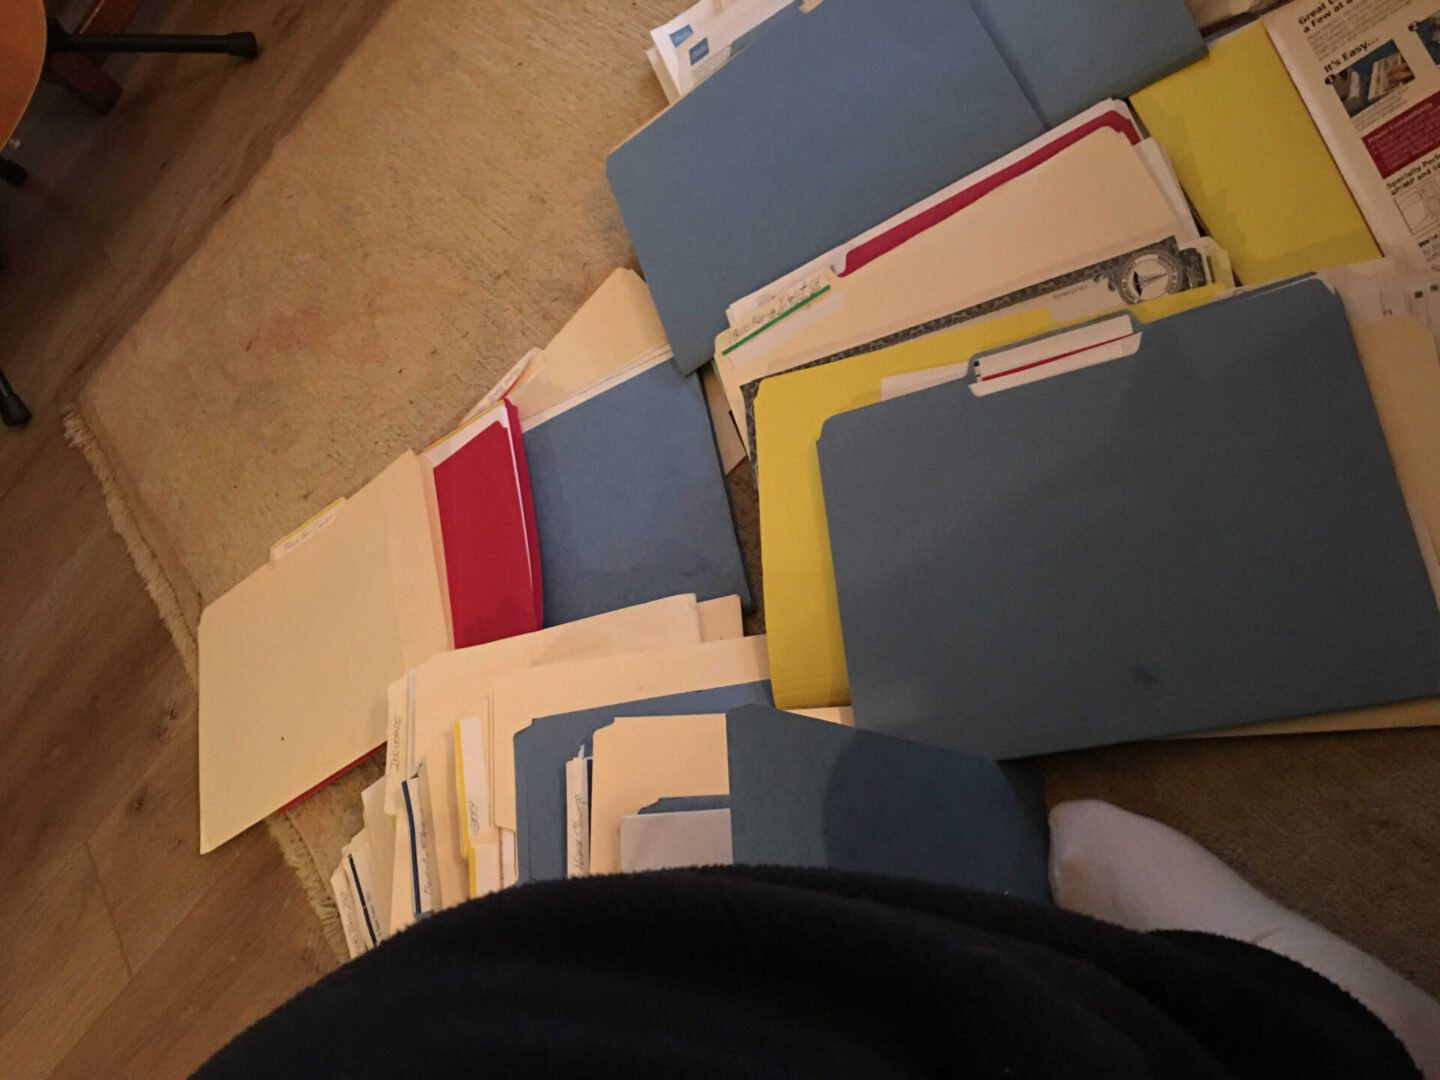 File folders on the ground